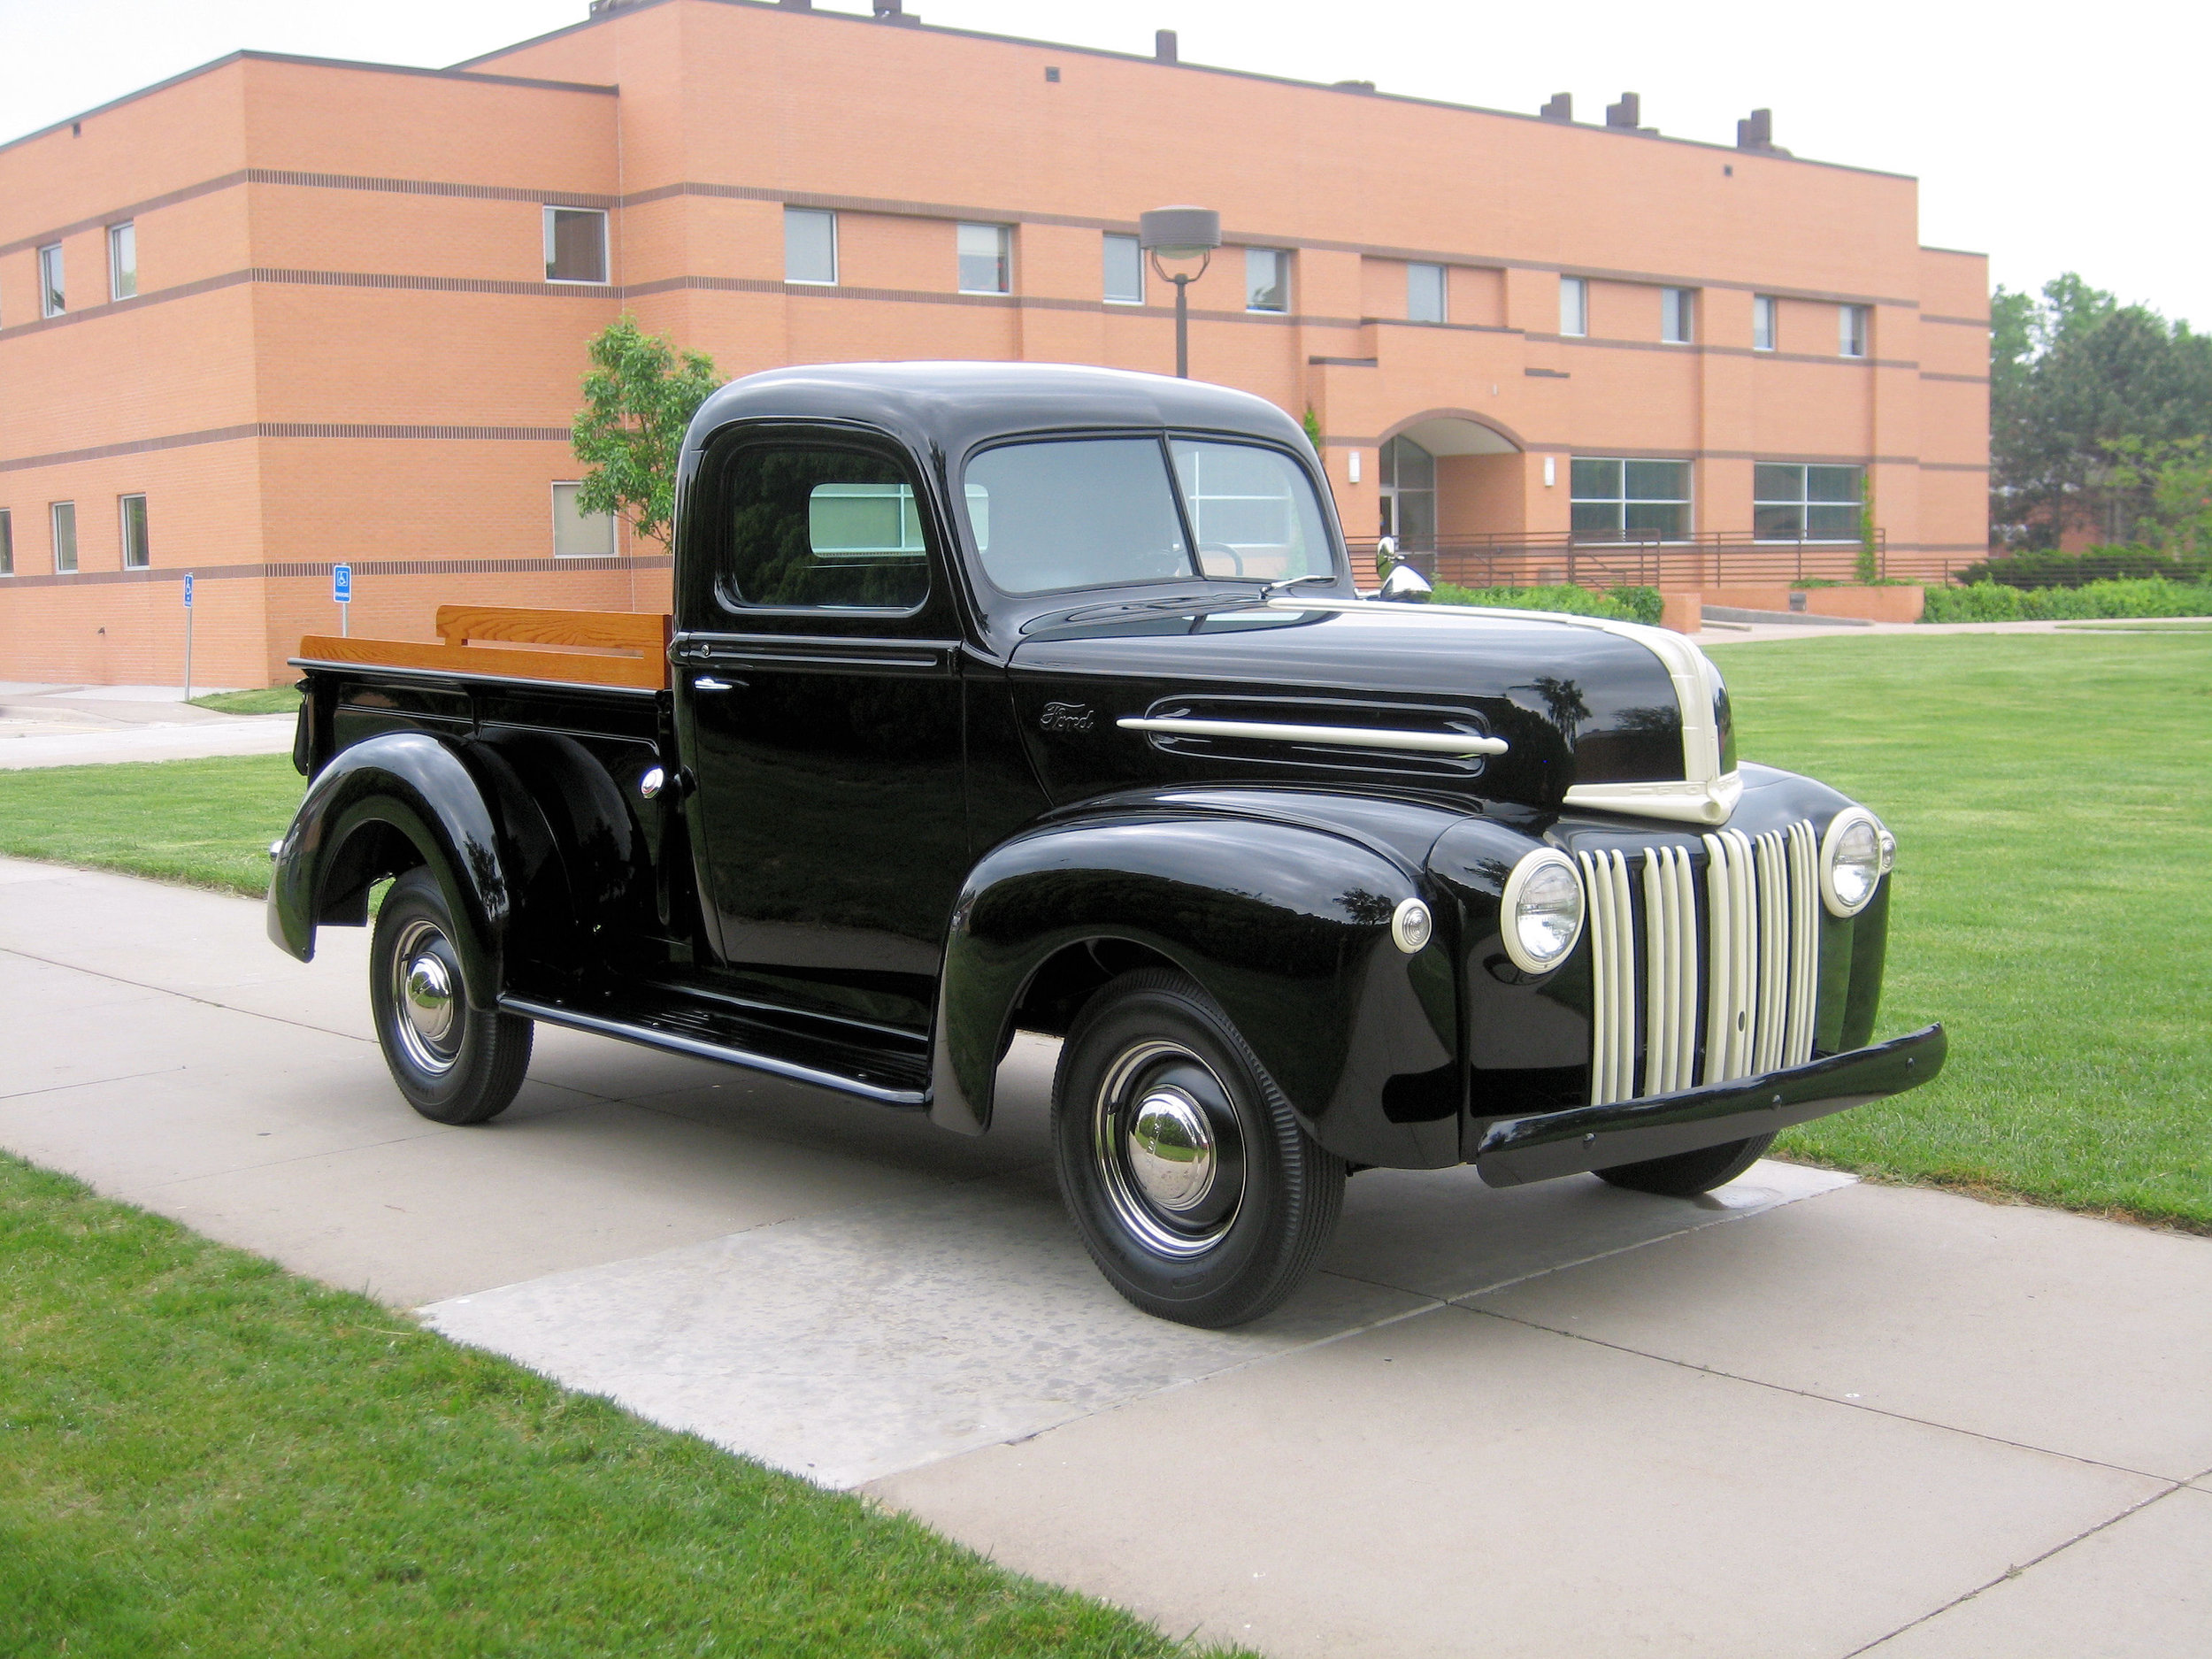 1947 Ford 1/2 Ton Pick-Up